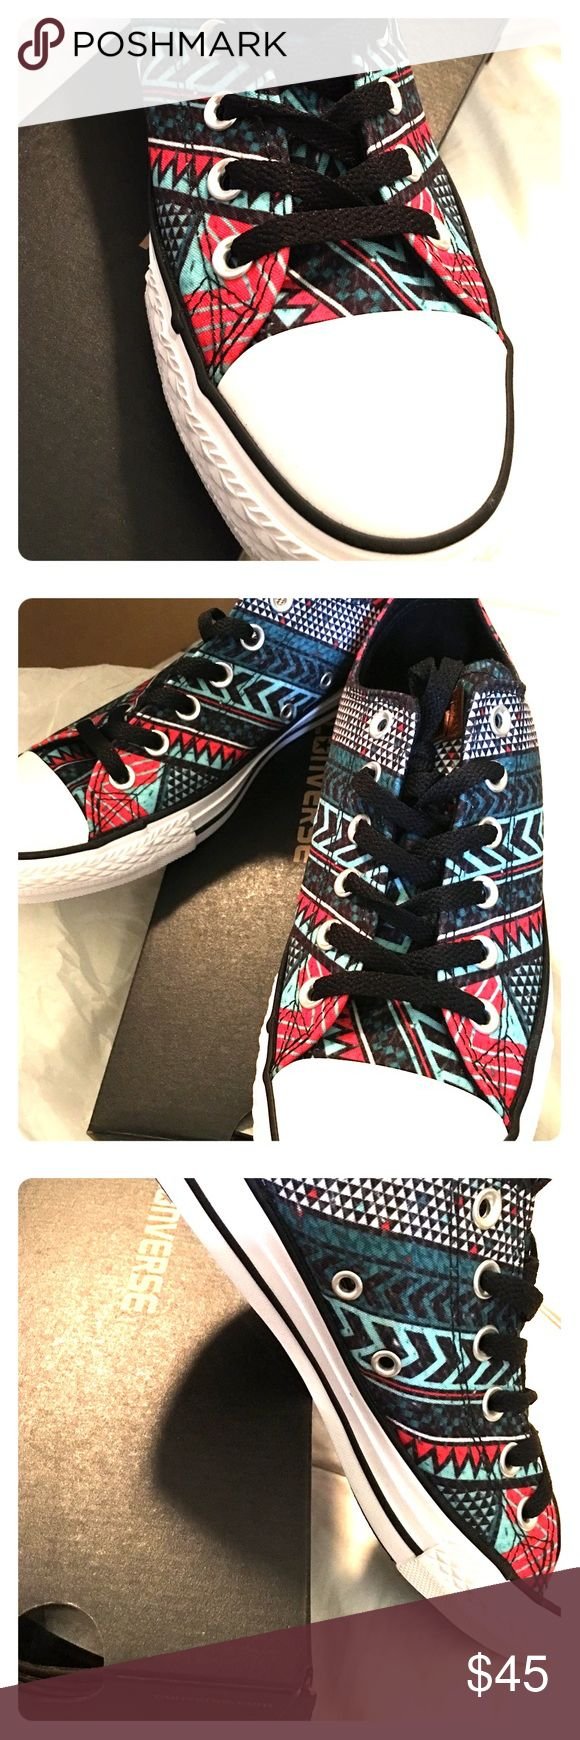 NWT CONVERSE AZTEC PRINT UNISEX Really good looking pair of converse. Never worn. Slightly large for me. Aztec print including aqua black and red shades. I don't have a lot of price movement in these. I am listing them low. Women's 9 Men's 7 Converse Shoes Sneakers